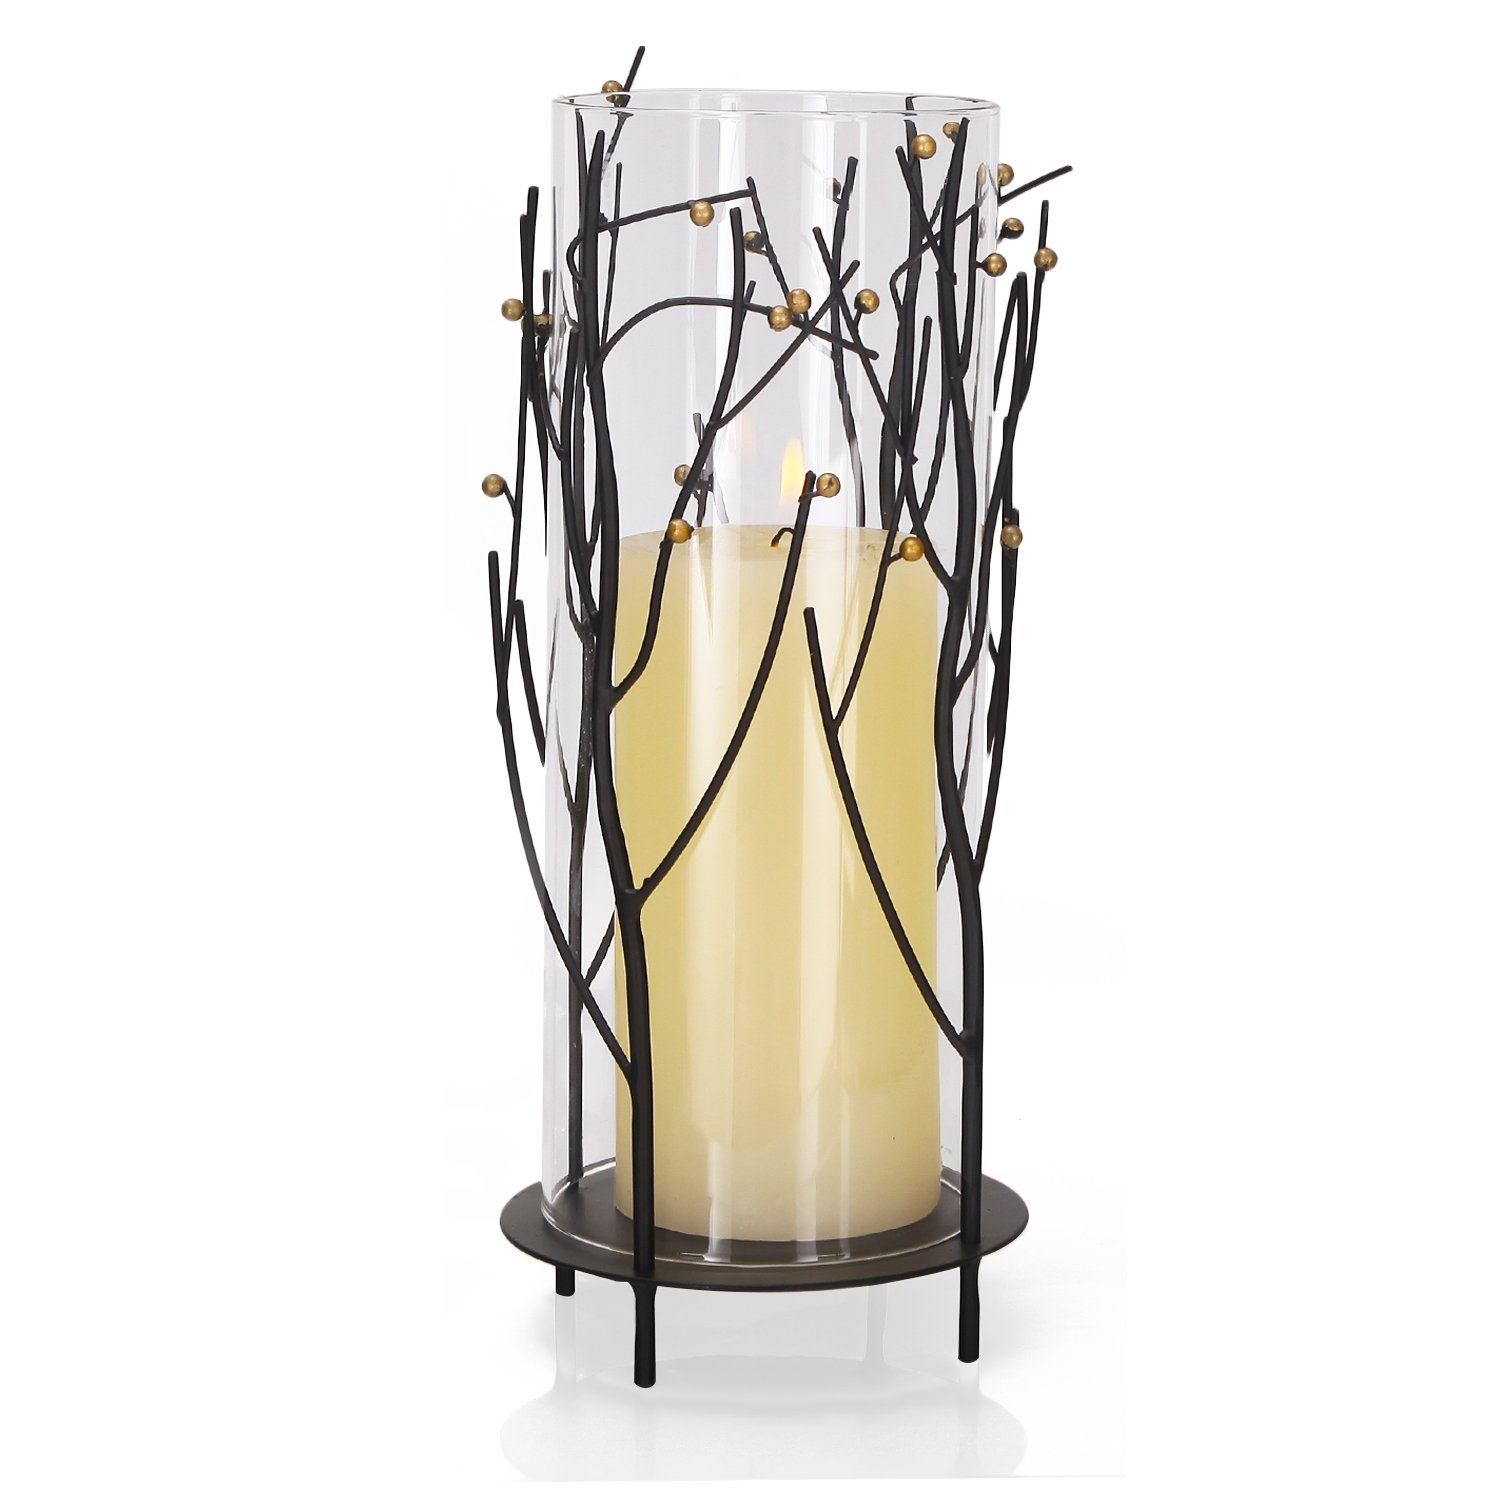 Homebeez Decorative Iron Table Standing Candle Holder, Tree Branches Style, Black